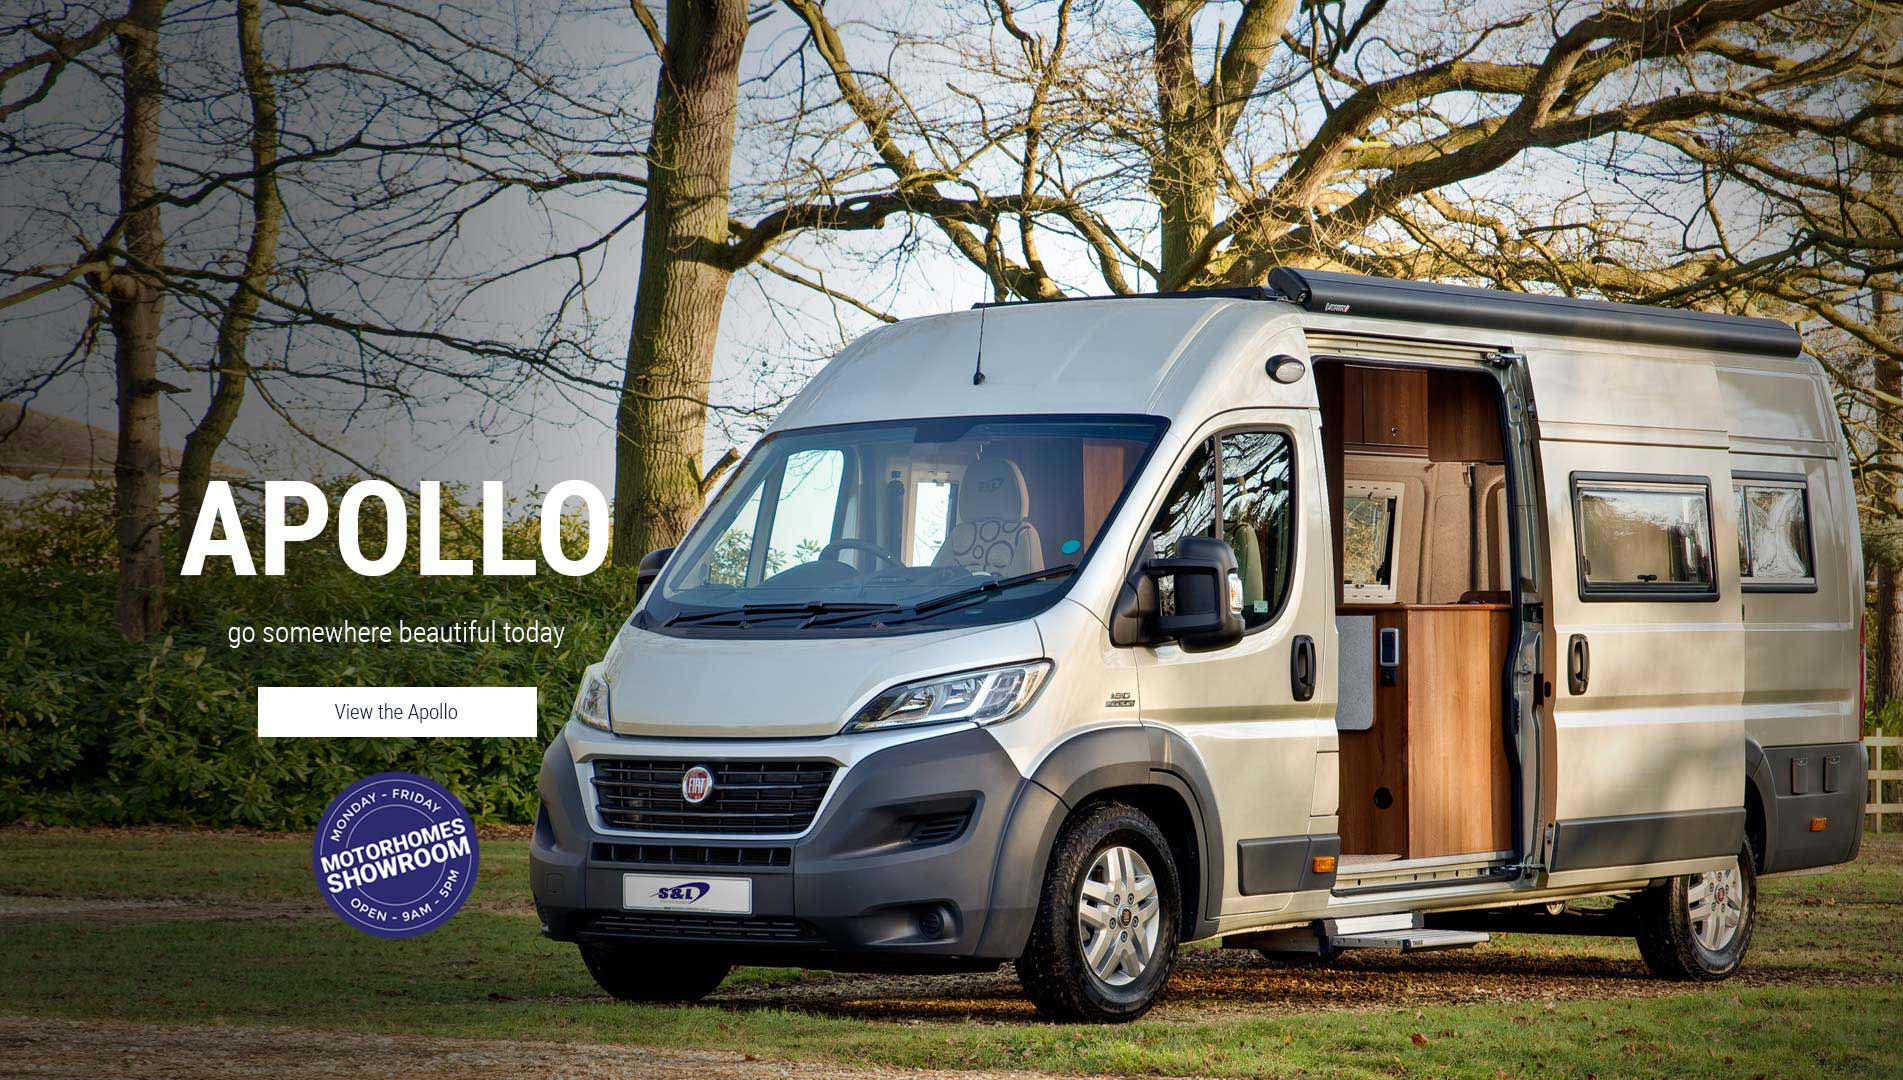 Apollo Motorhome